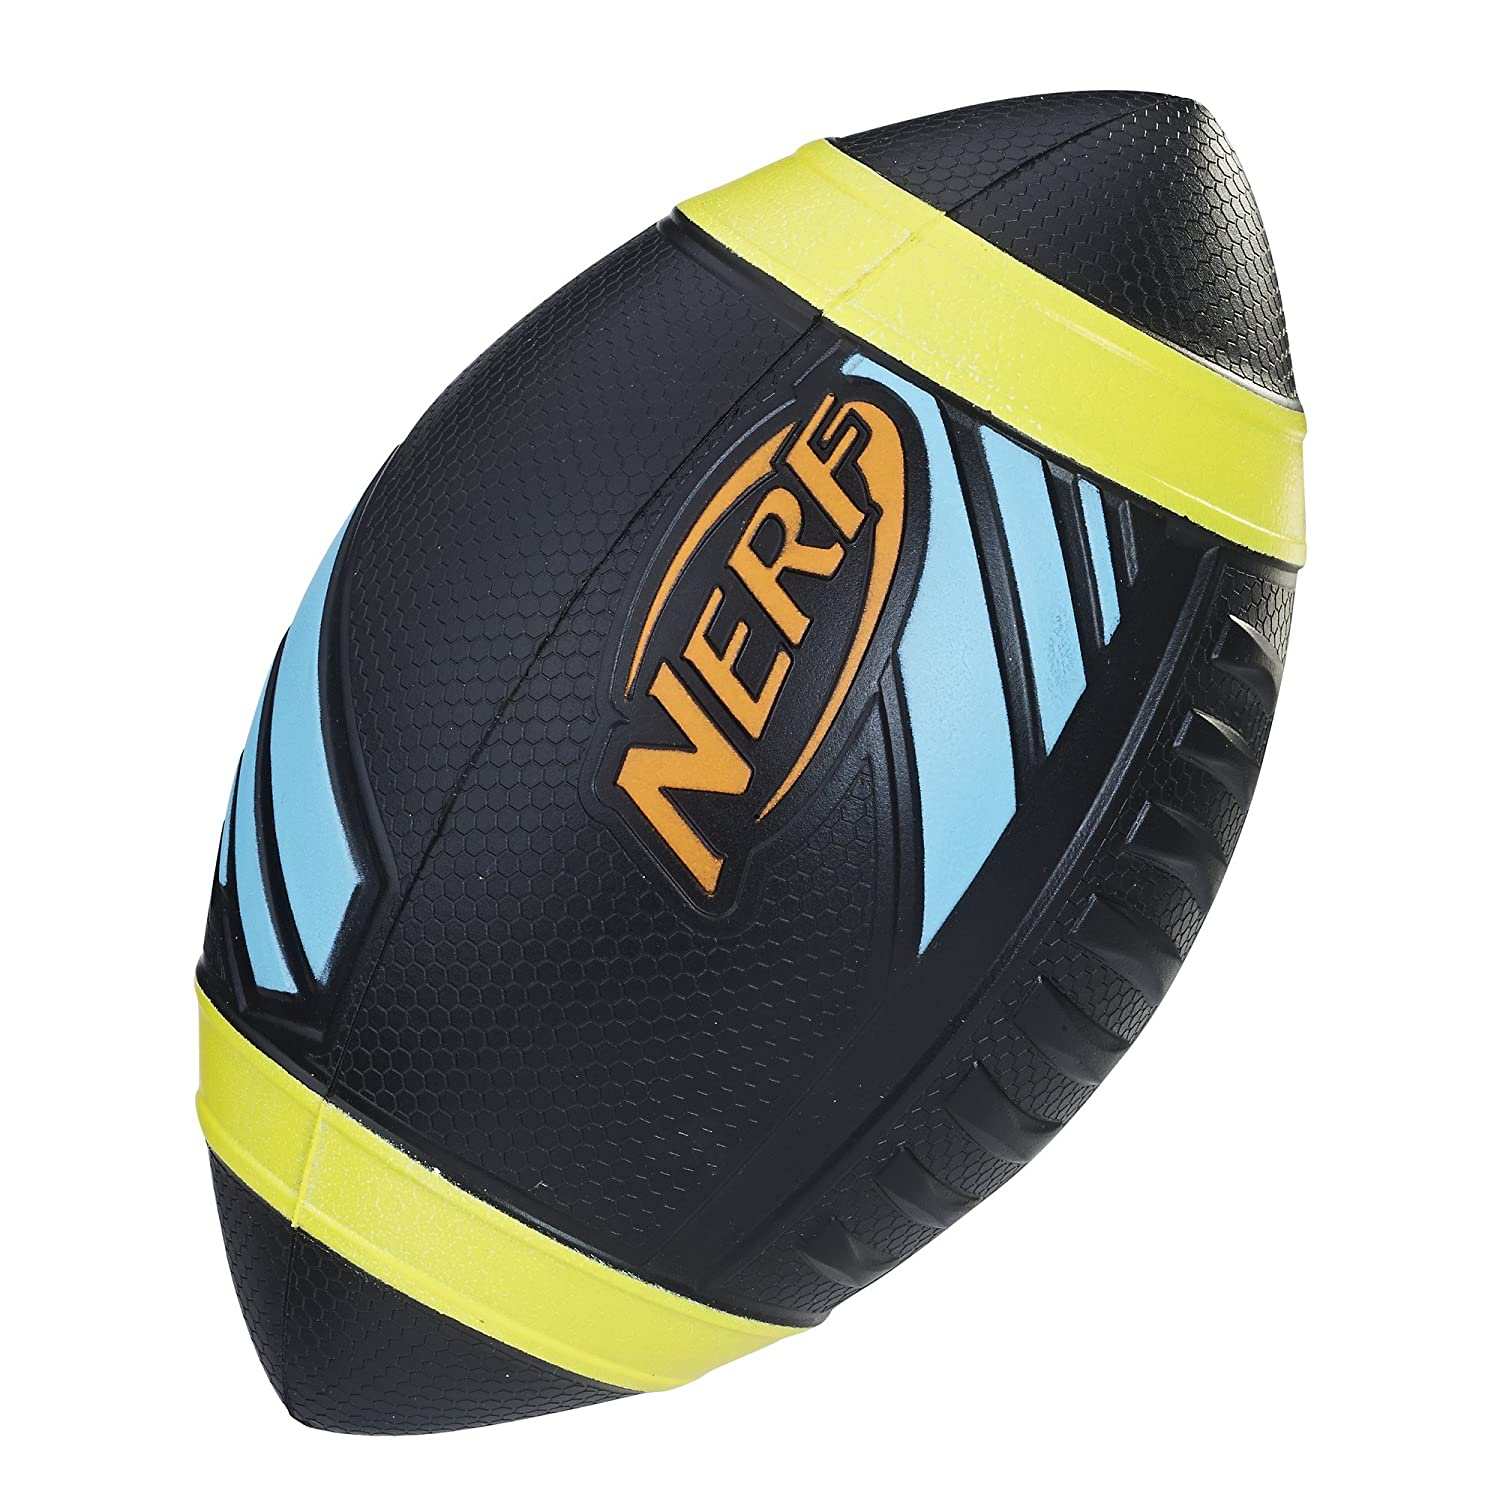 Nerf Sports Pro Grip Football (Black Football) B075LNDN97